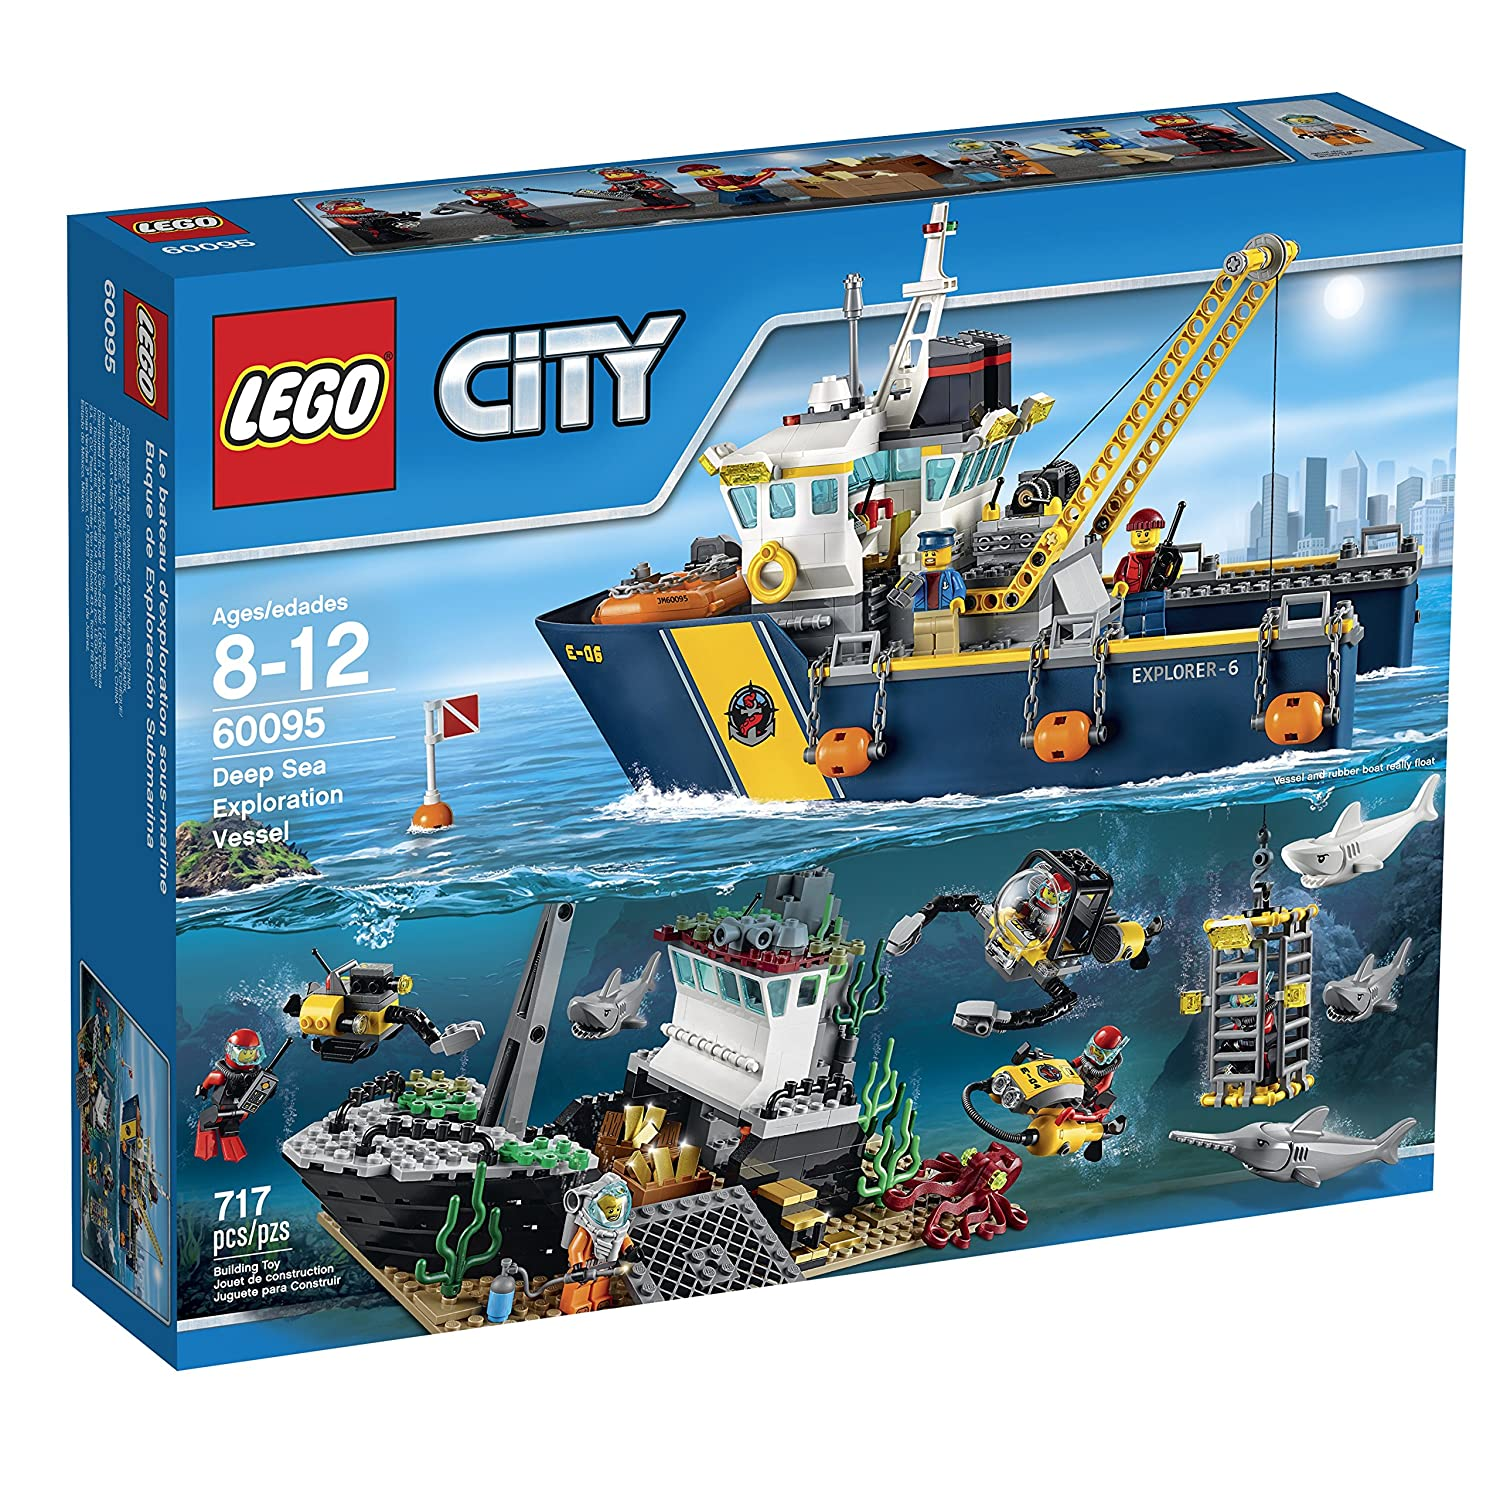 Top 9 Best LEGO Boat Sets Reviews in 2020 7